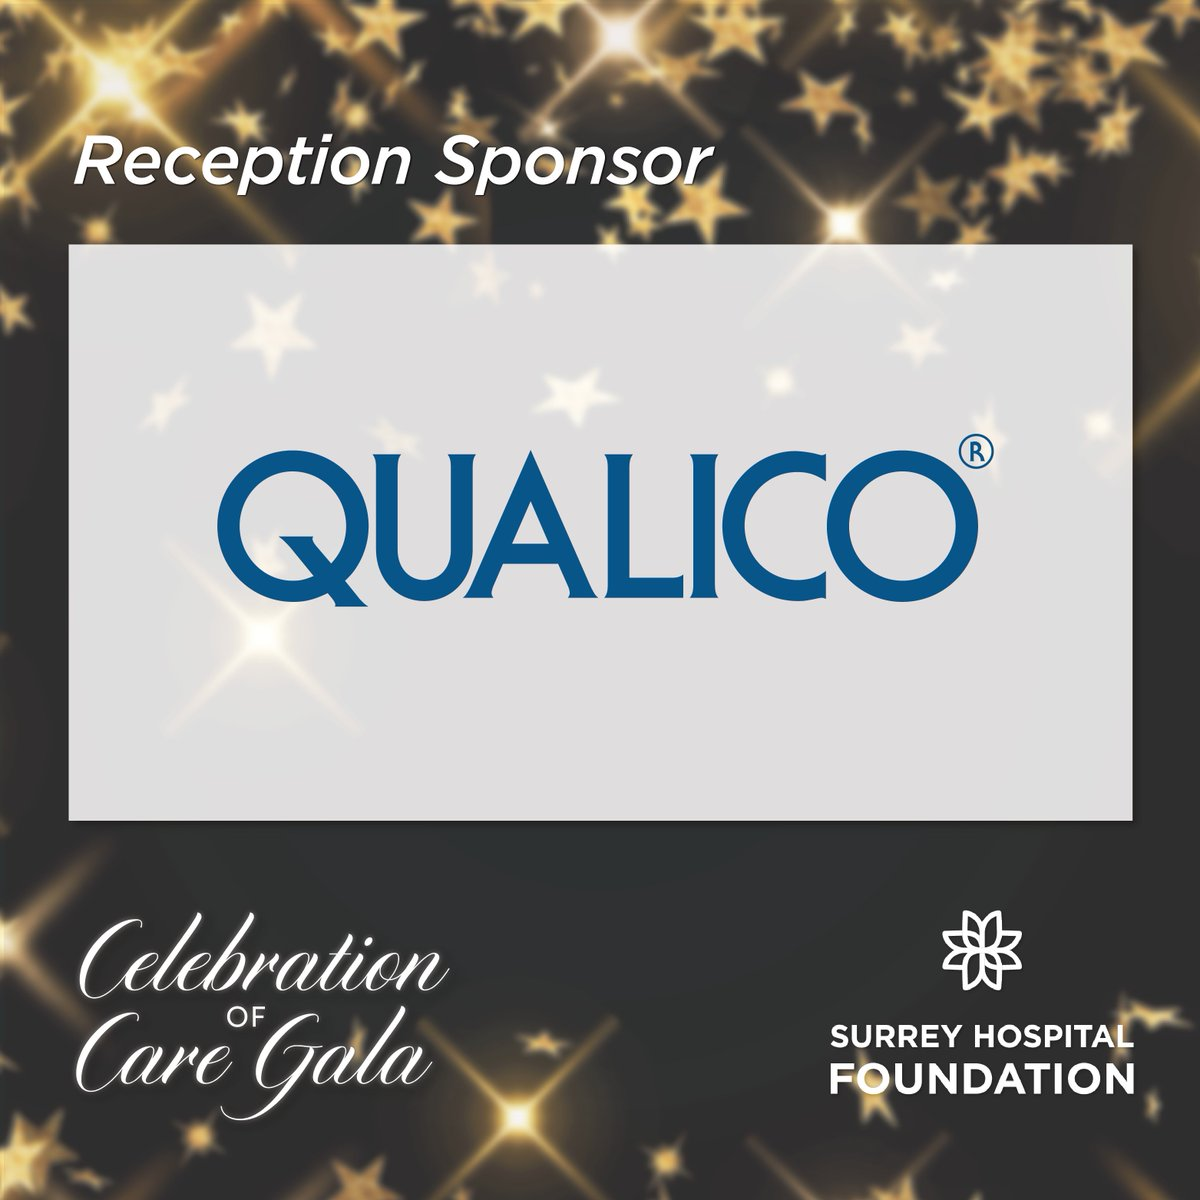 Thank you @QualicoComm for supporting us once again as our Reception Sponsor for the now sold out Celebration of Care Gala! We are grateful for your tremendous support. - Celebration of Care Gala Feb 22, 2020 Aria Banquet Hall https://surreyhospitalfoundation.com/gala/ #SurreyGownUp #SHFgala2020pic.twitter.com/3qlGVdSR0I